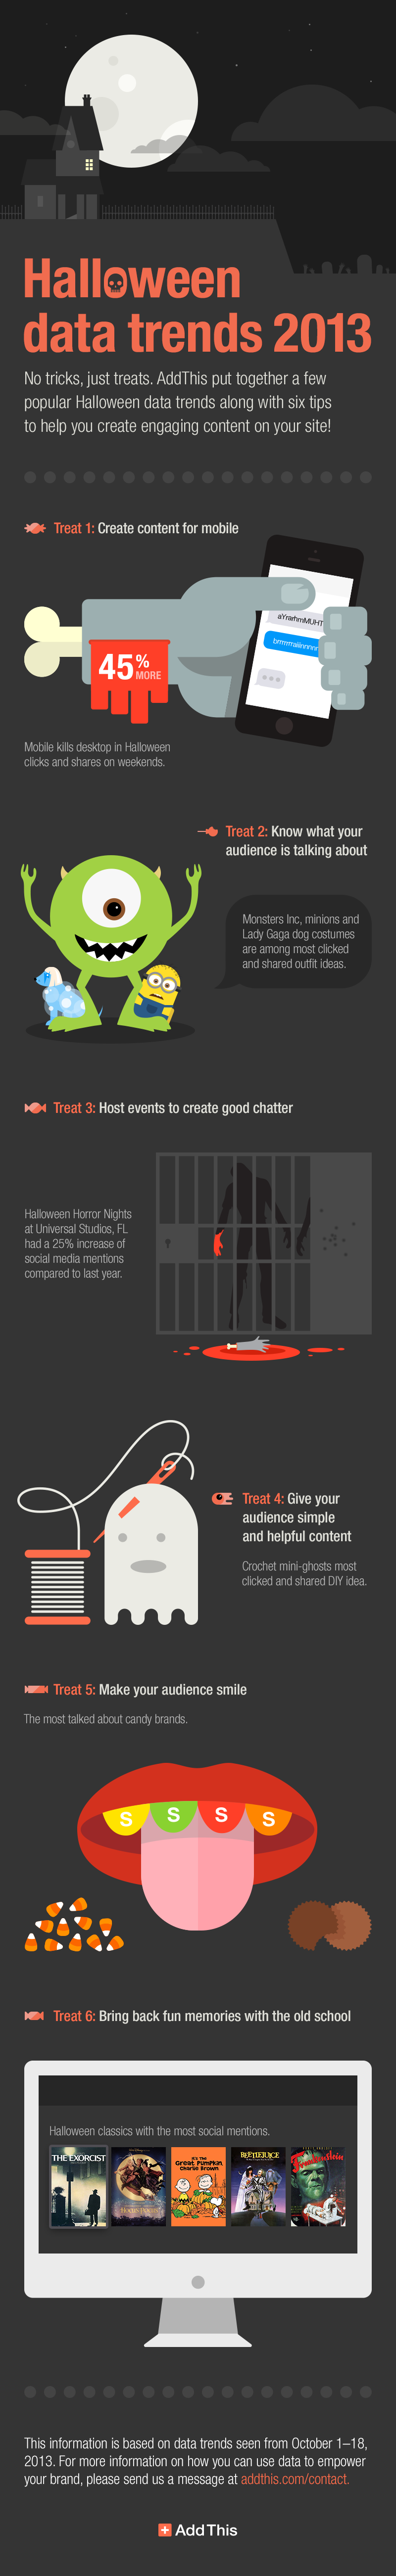 Marketing on Halloween 2013-Infographic